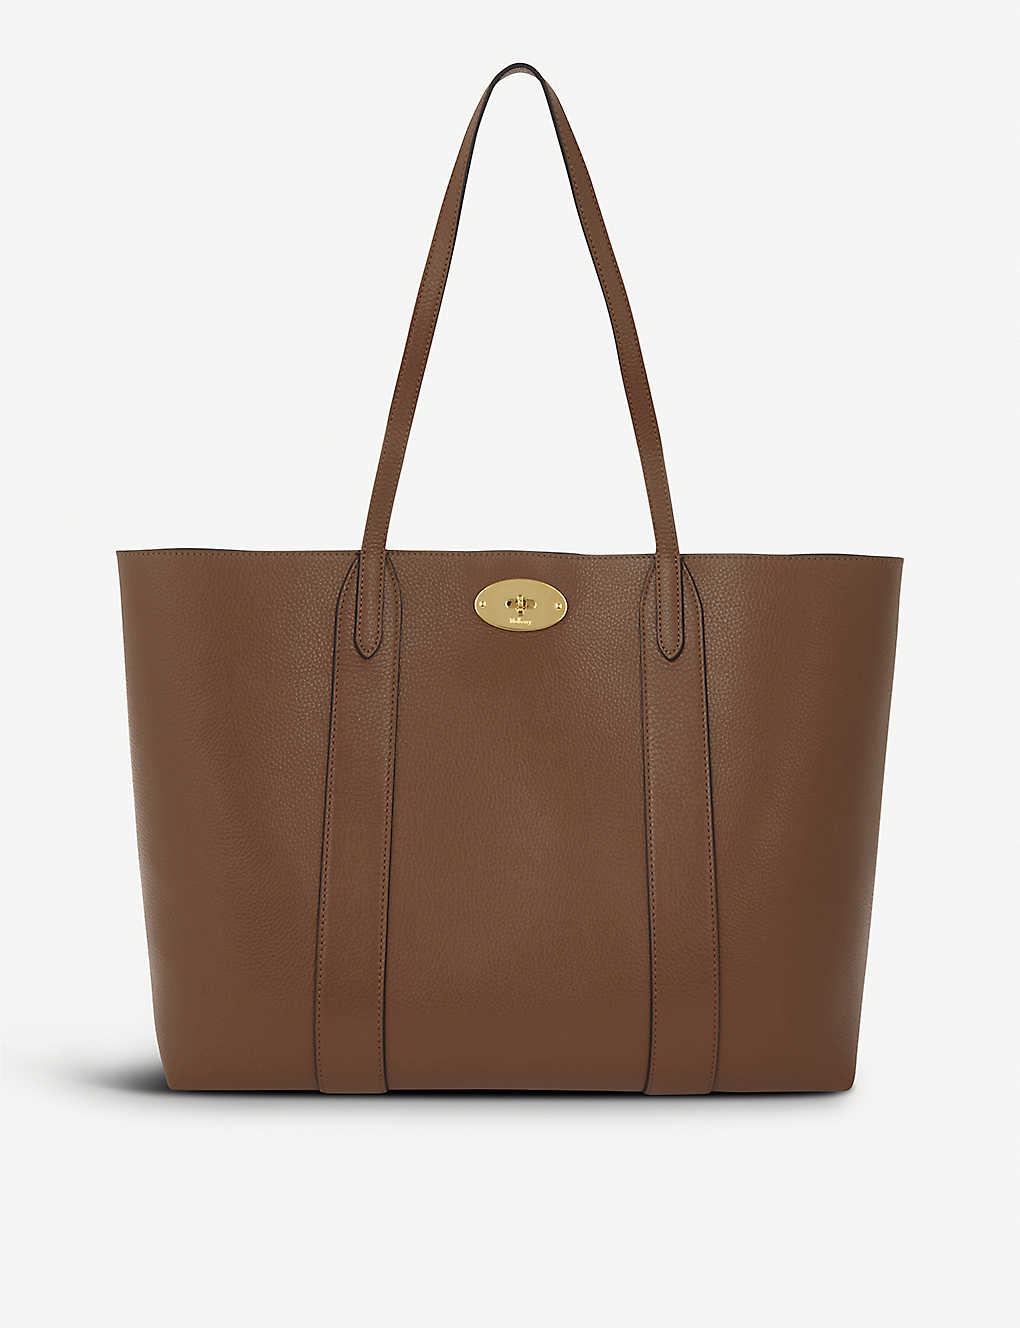 4d67f053bf1 MULBERRY - Bayswater leather tote bag | Selfridges.com